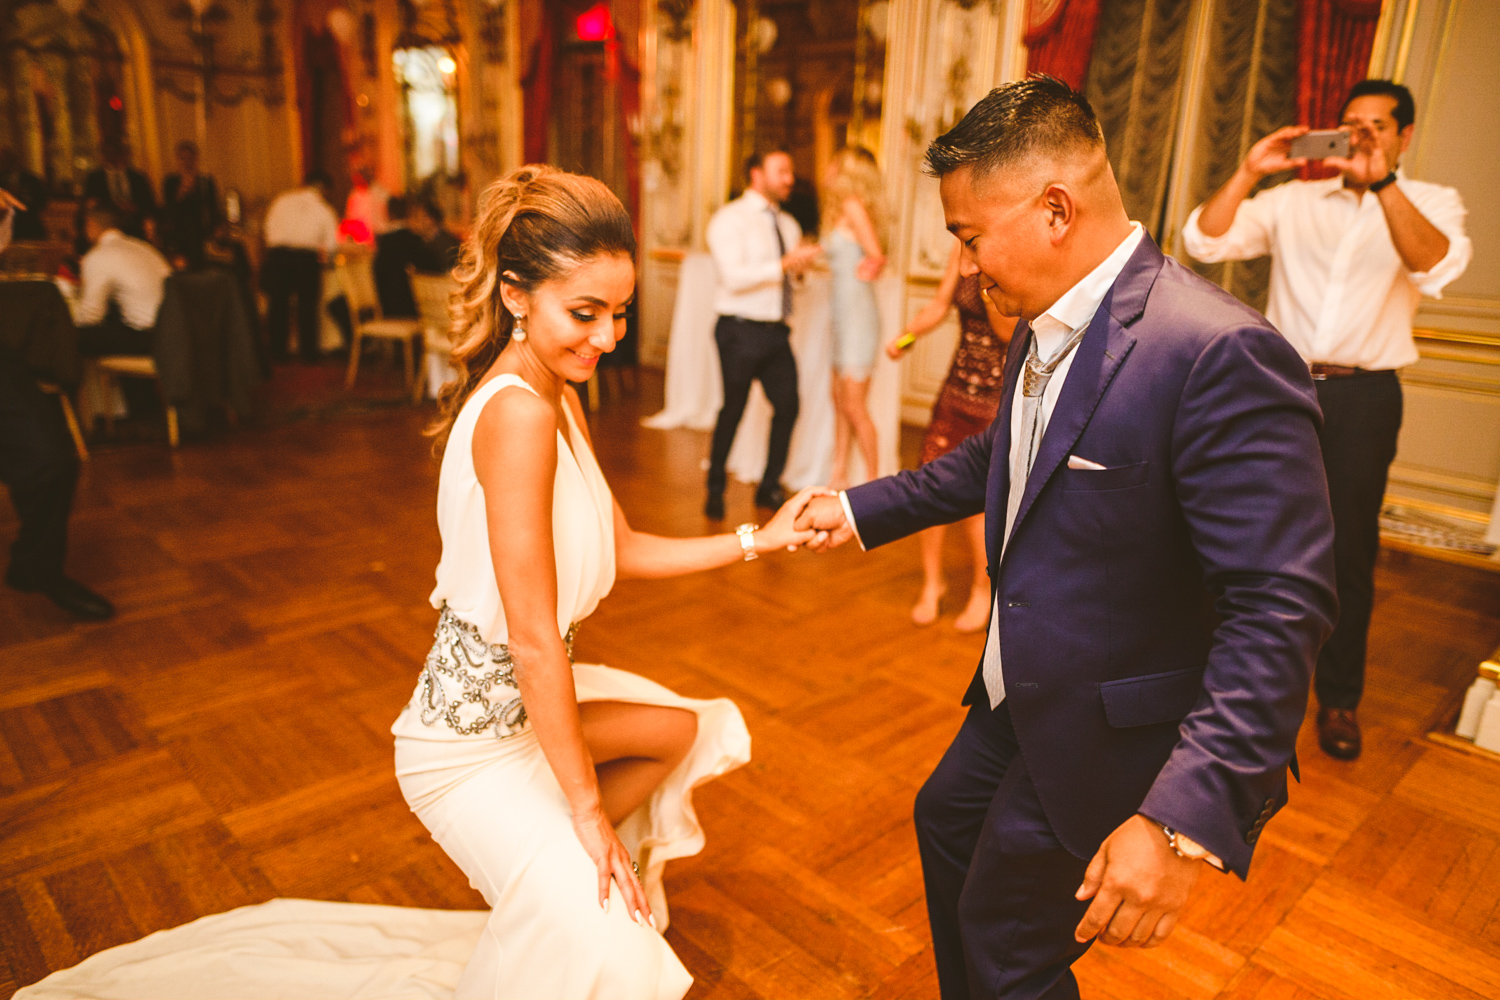 017 bride to be and groom to be share a dance at their engagement party in washington dc.jpg